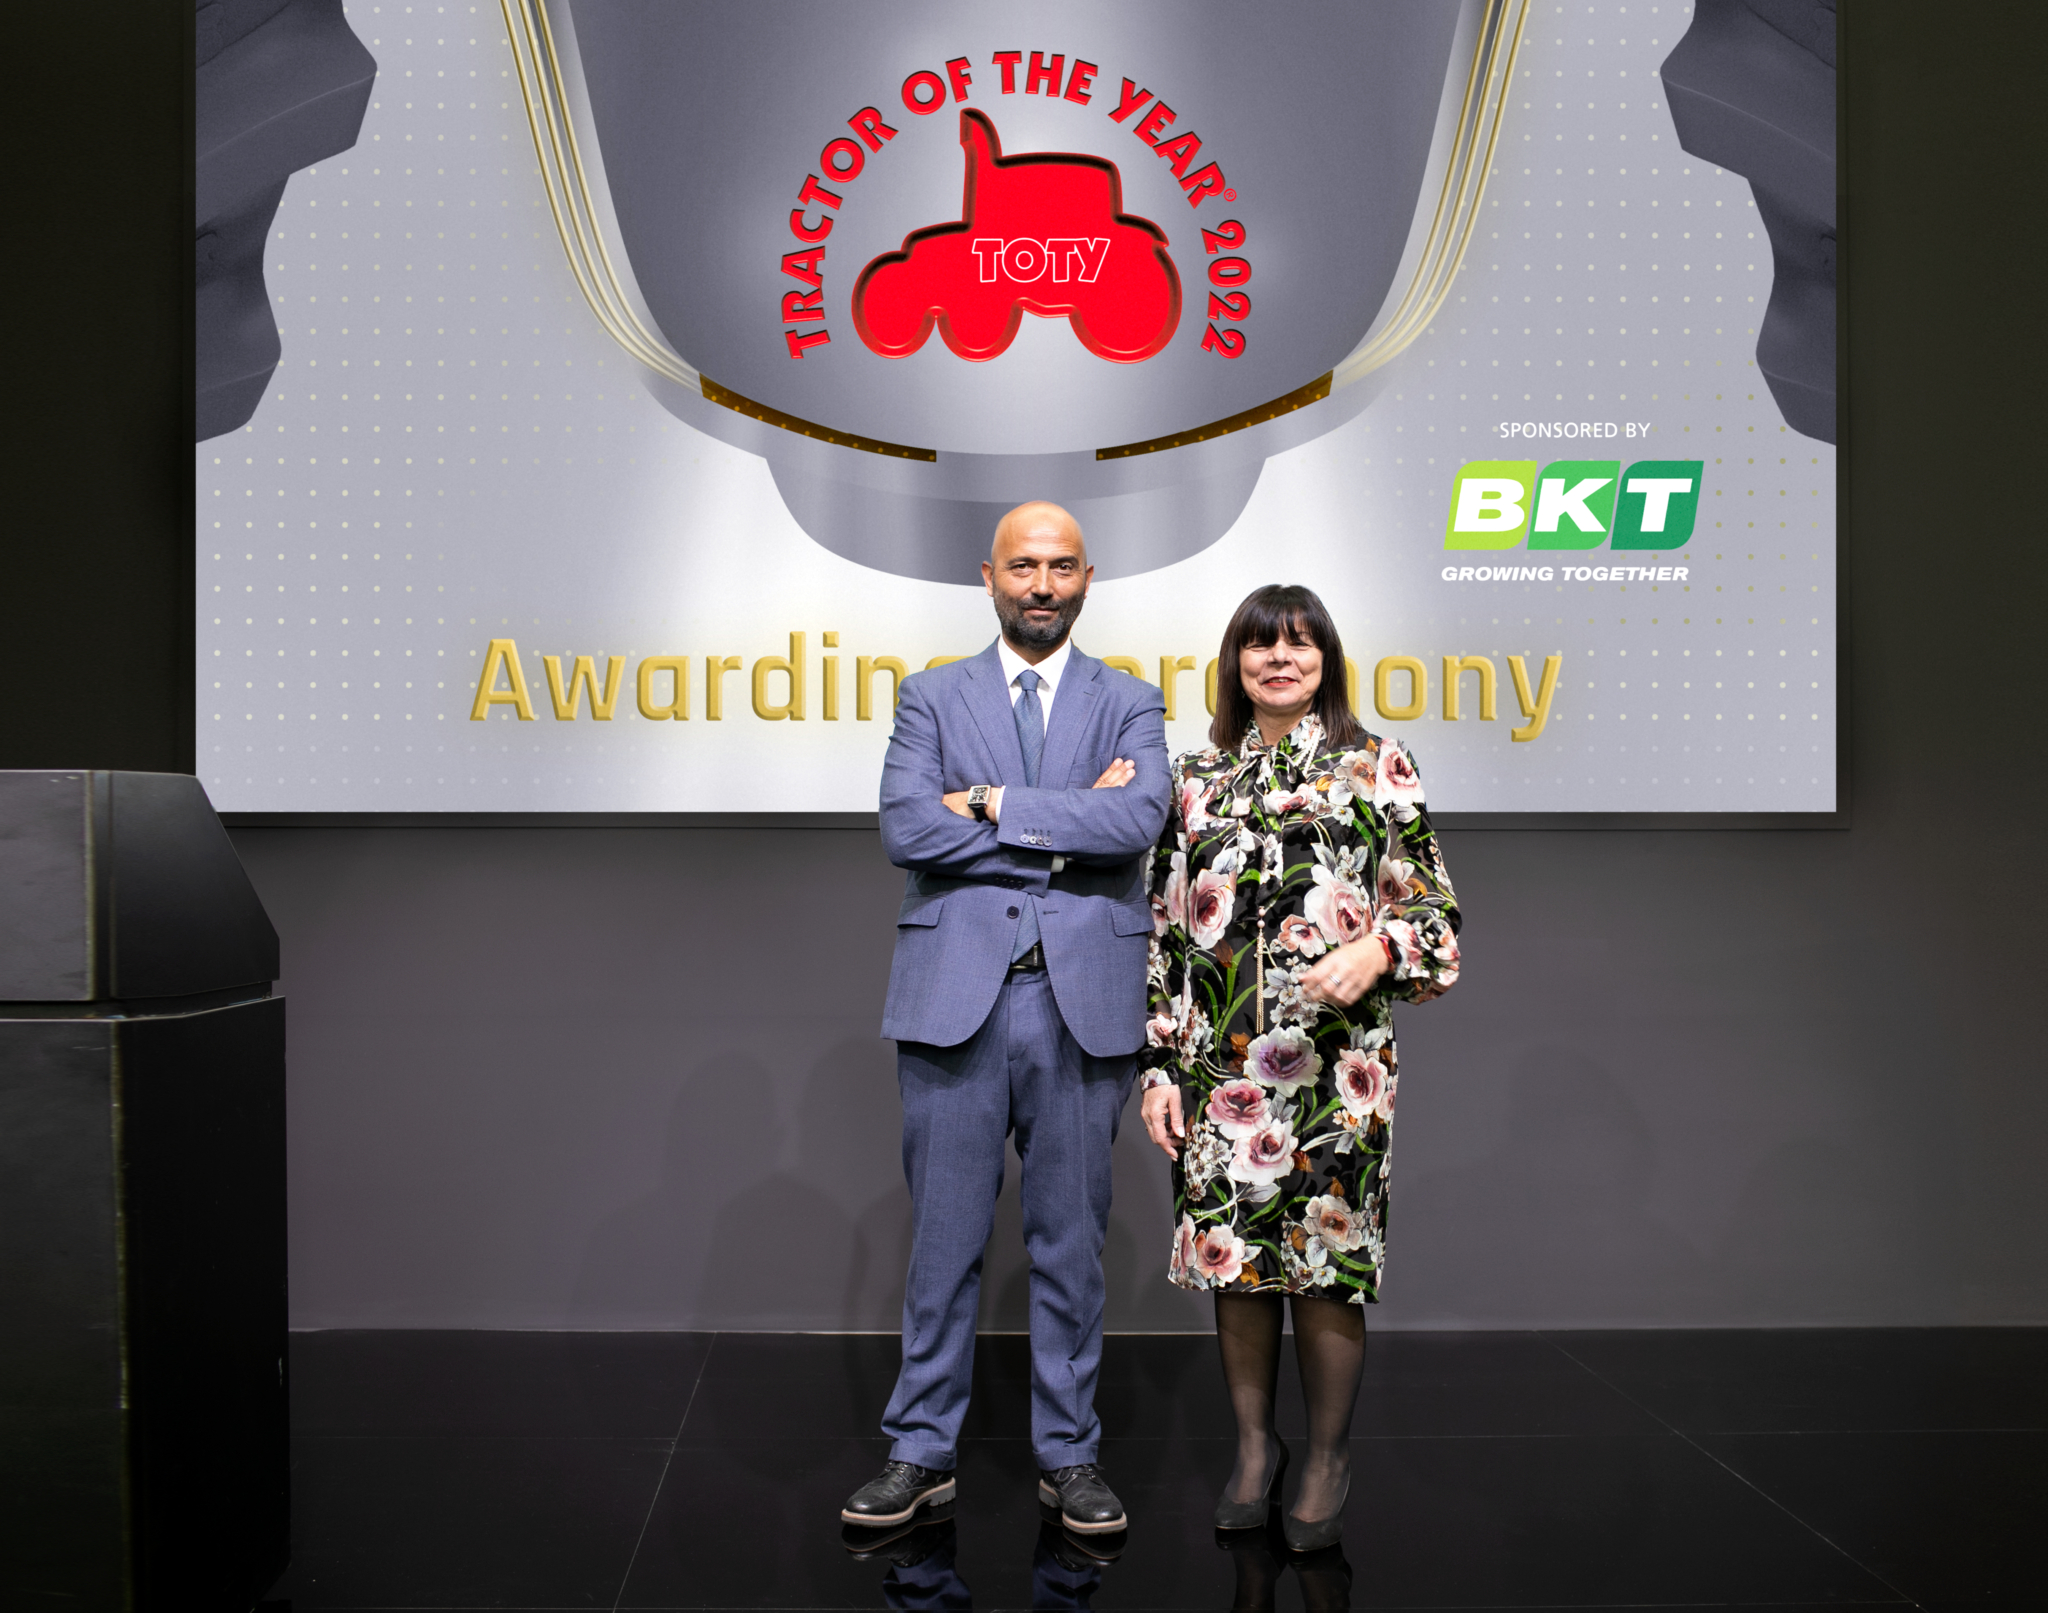 BKT-supported Tractor of the Year 2022 announces winners